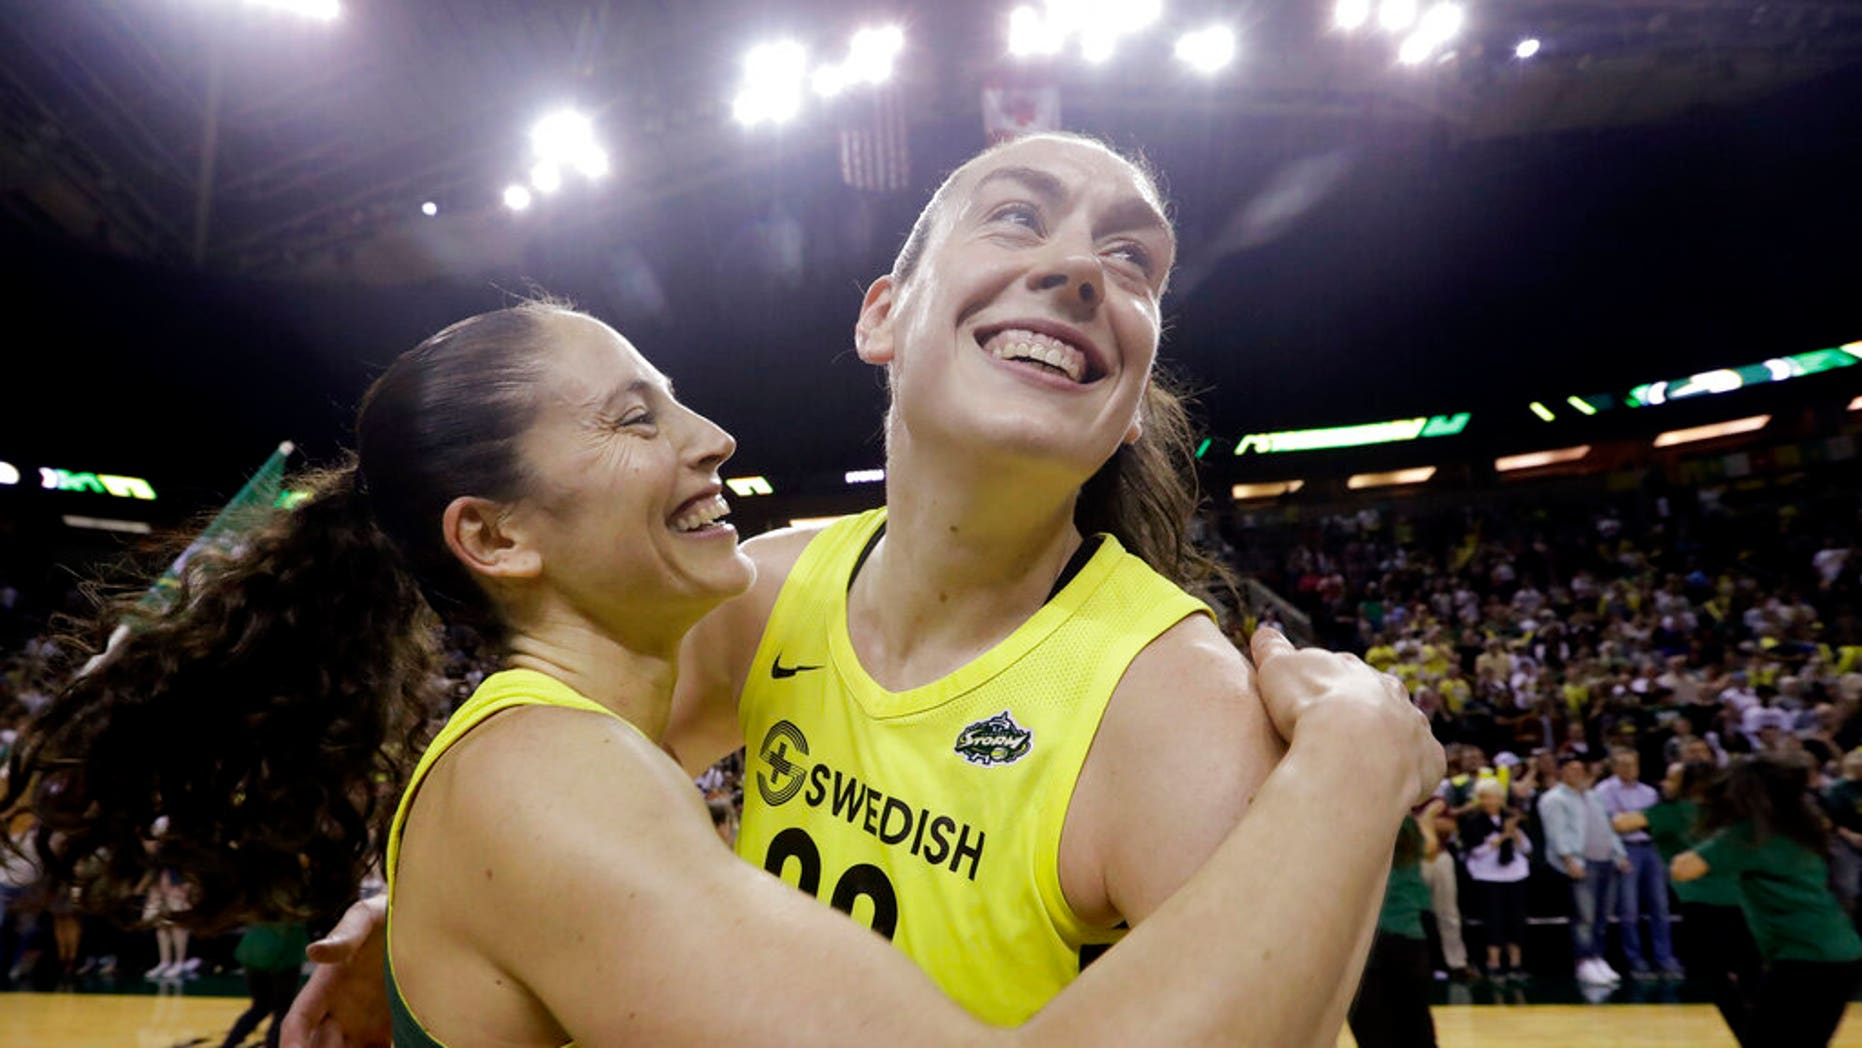 FILE - In this Sept. 4, 2018, file photo, Seattle Storm's Breanna Stewart, right, is embraced by Sue Bird after the Storm defeated the Phoenix Mercury 94-84 during Game 5 of a WNBA basketball playoff semifinal, in Seattle. The WNBA's 23rd season begins May 24, with the Seattle Storm the defending champion. (AP Photo/Elaine Thompson, File)